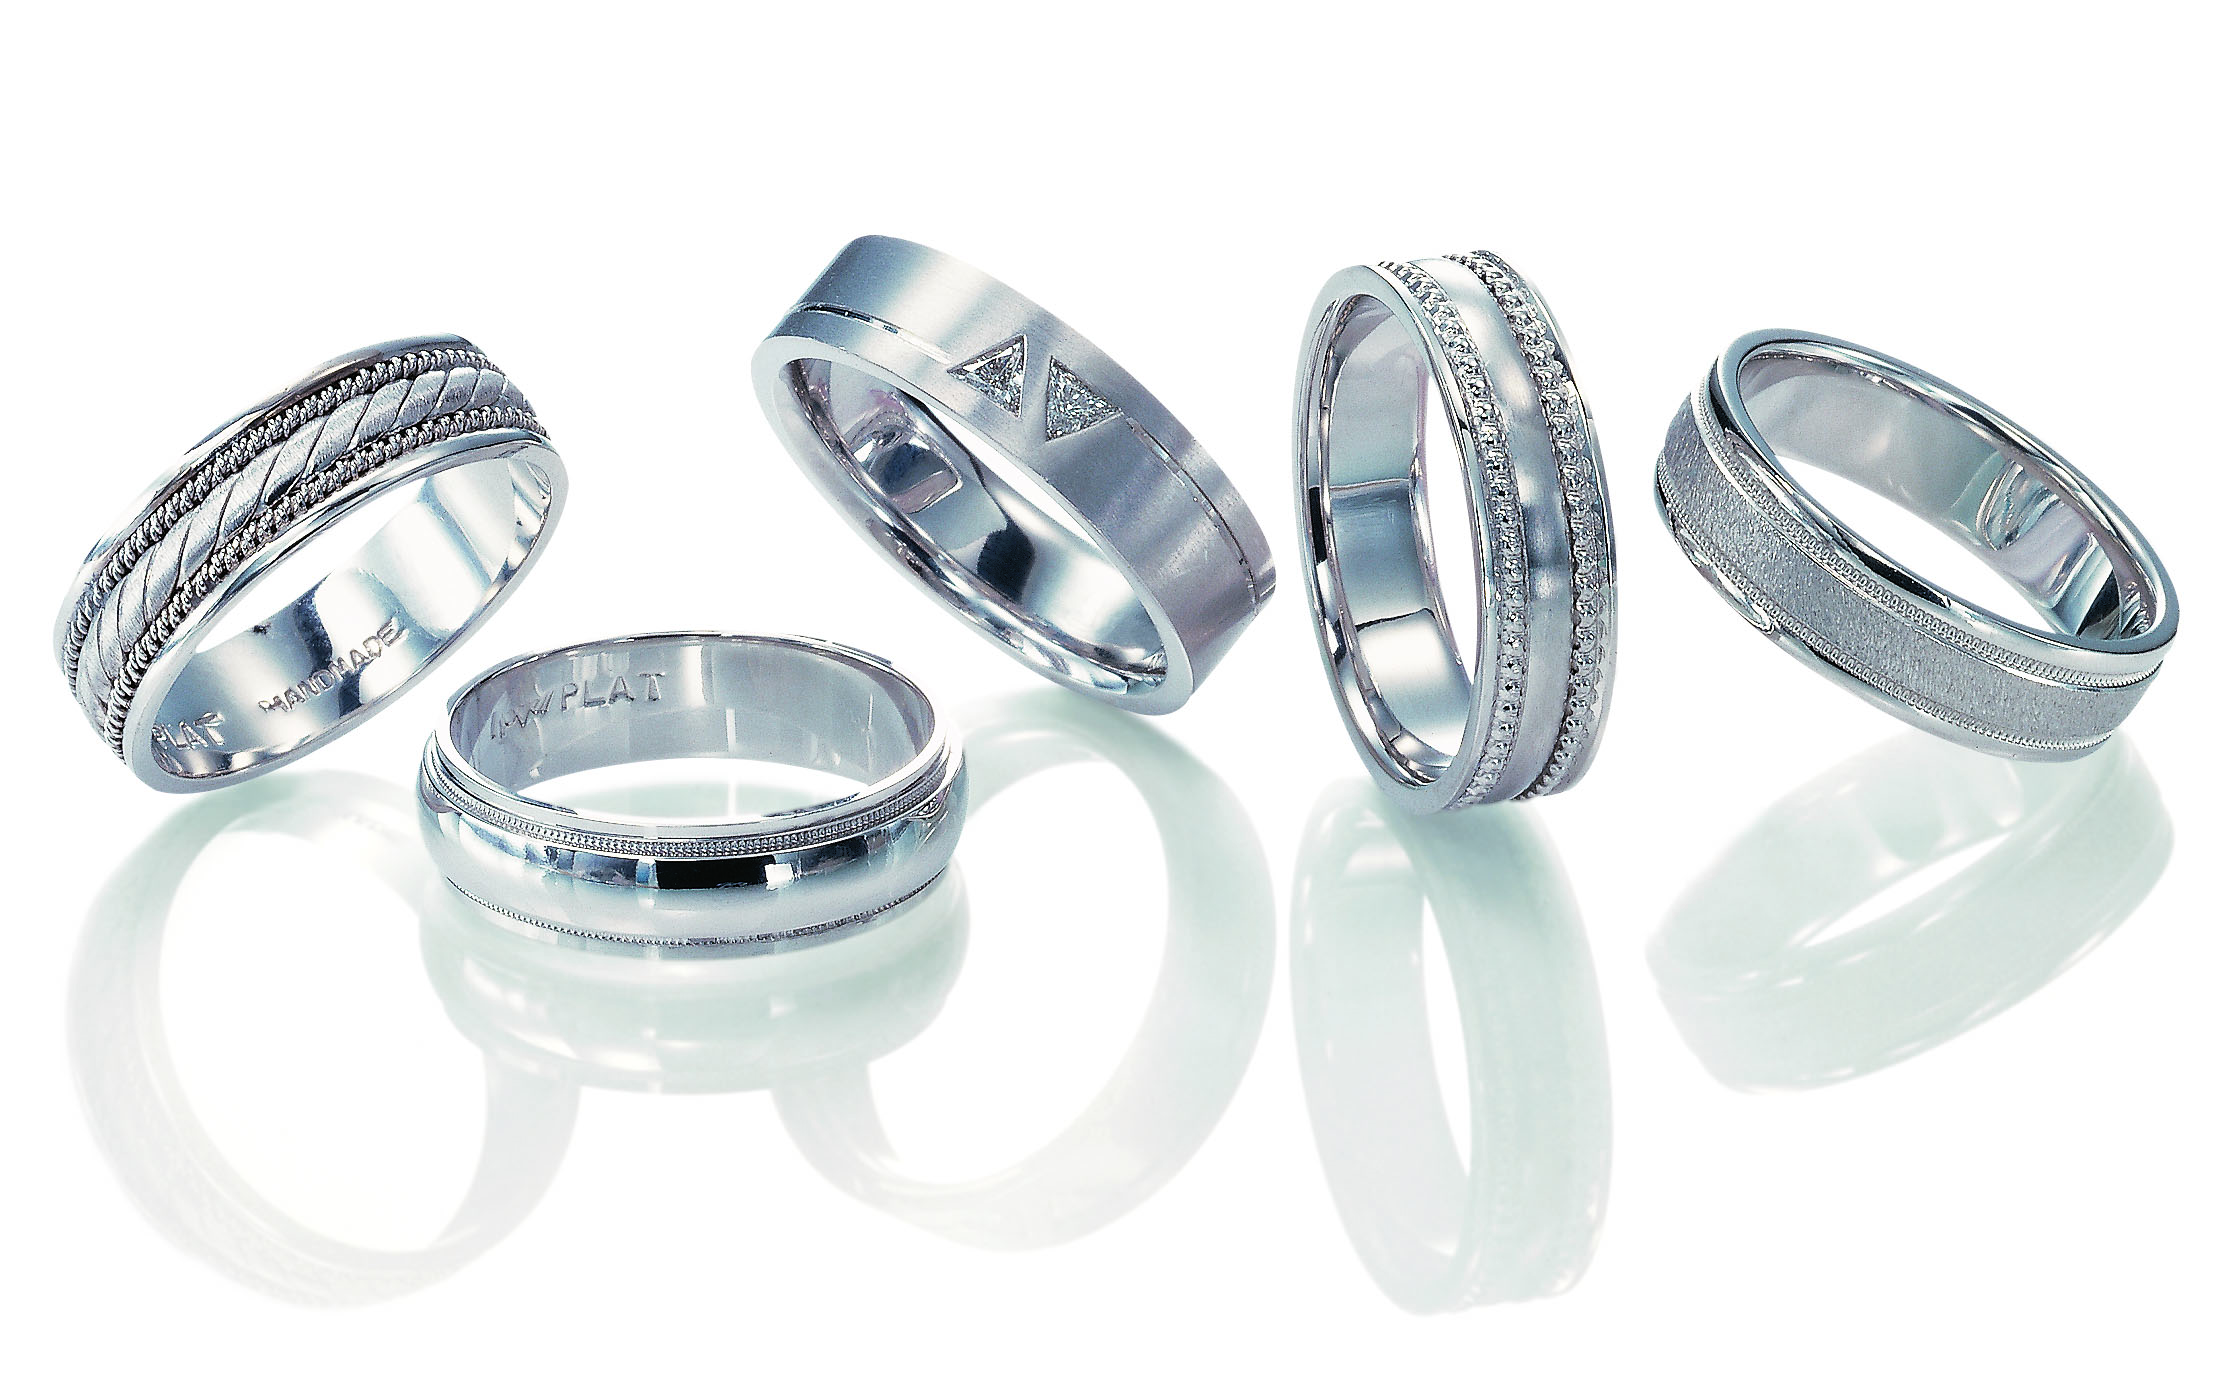 novell mens platinum wedding bands - David Tutera Wedding Rings